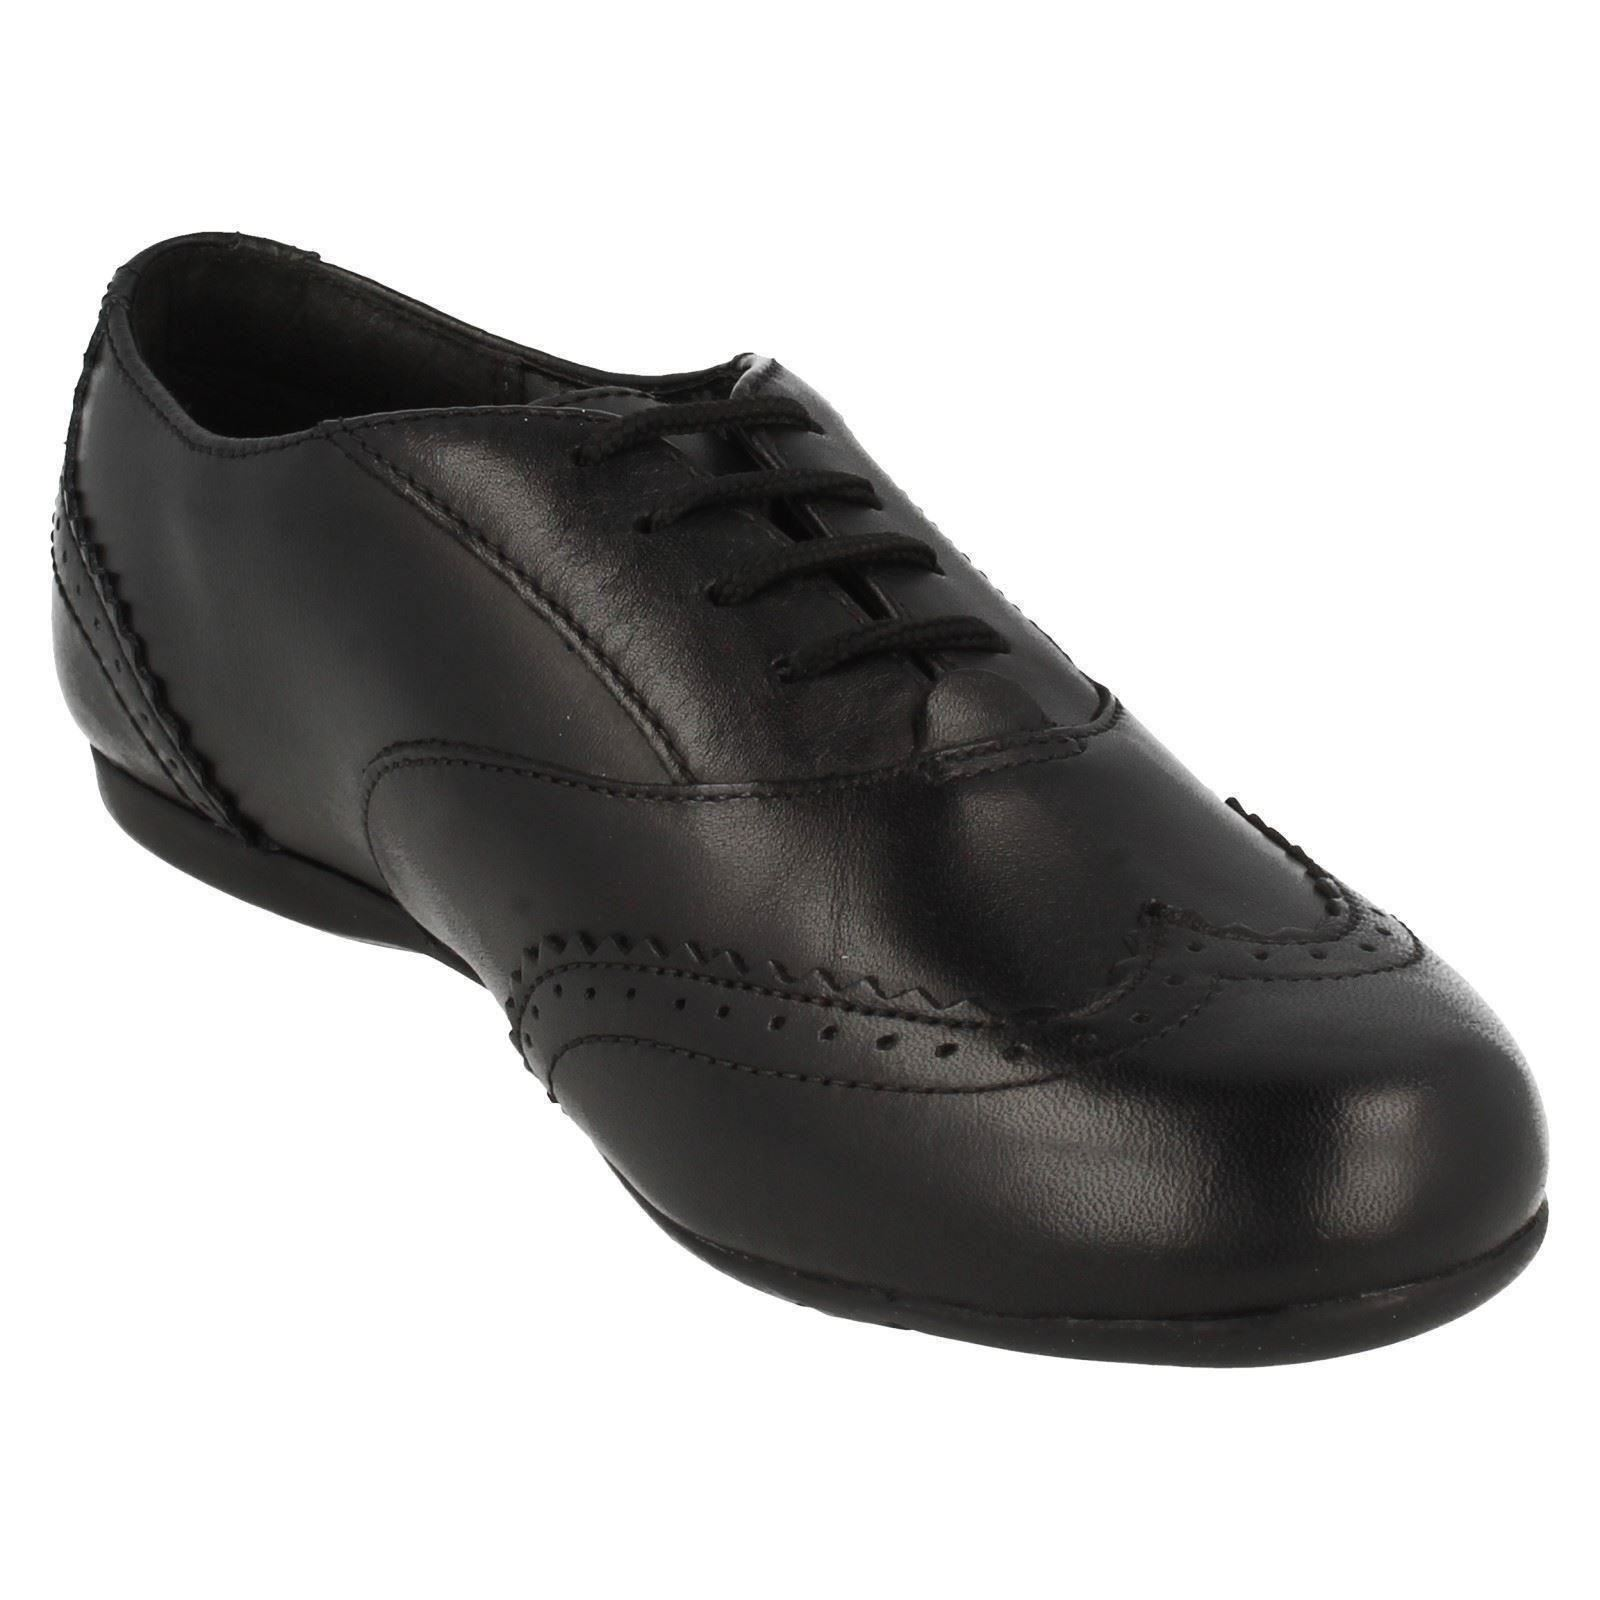 Girls Clarks Leather Lace-Up Formal School Shoes *Dance Honey*